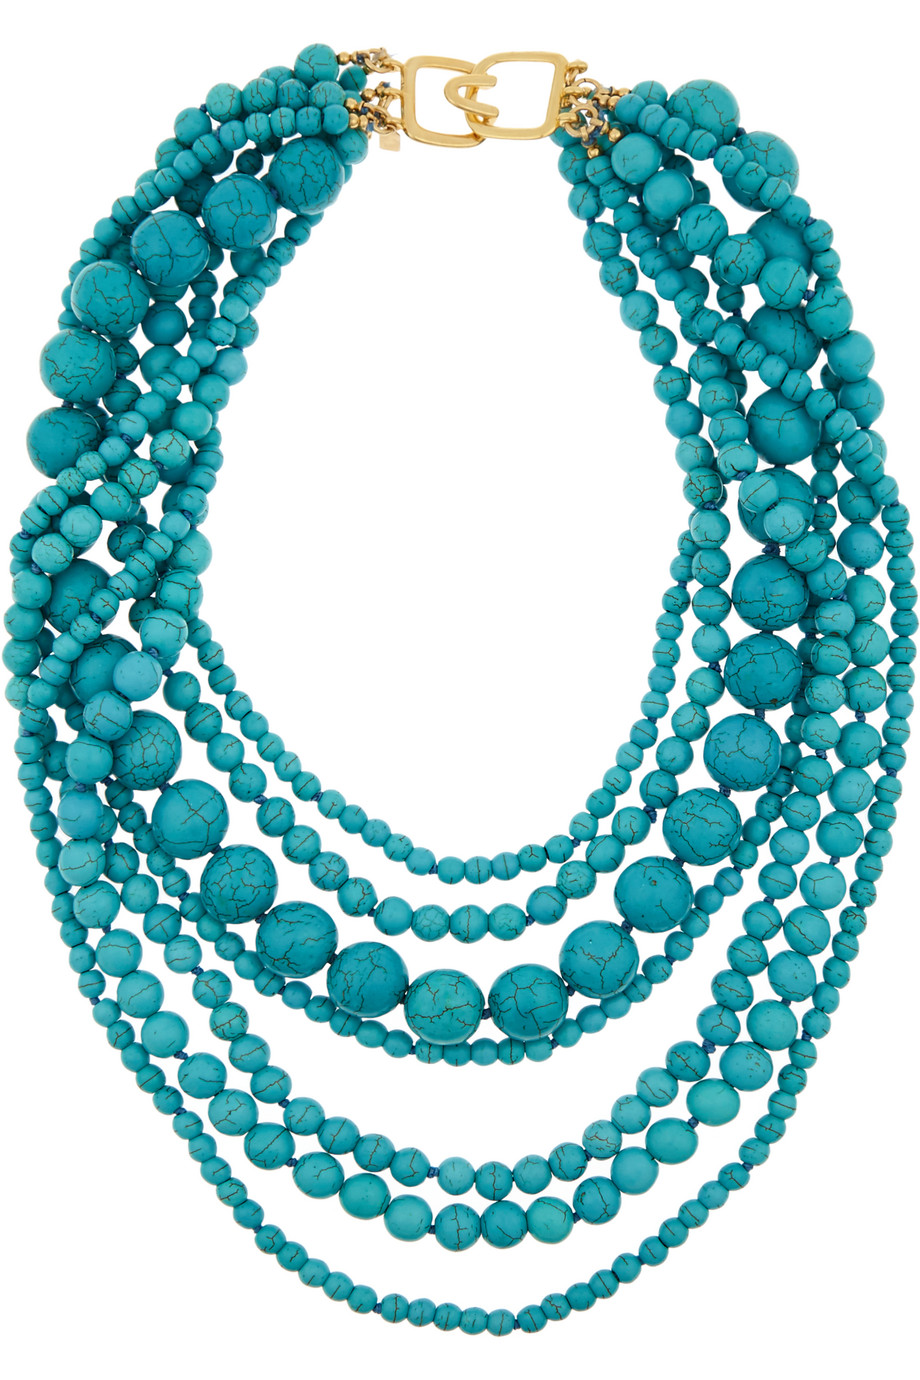 Gold-Plated Beaded Turquoise Necklace, Kenneth Jay Lane, Women's